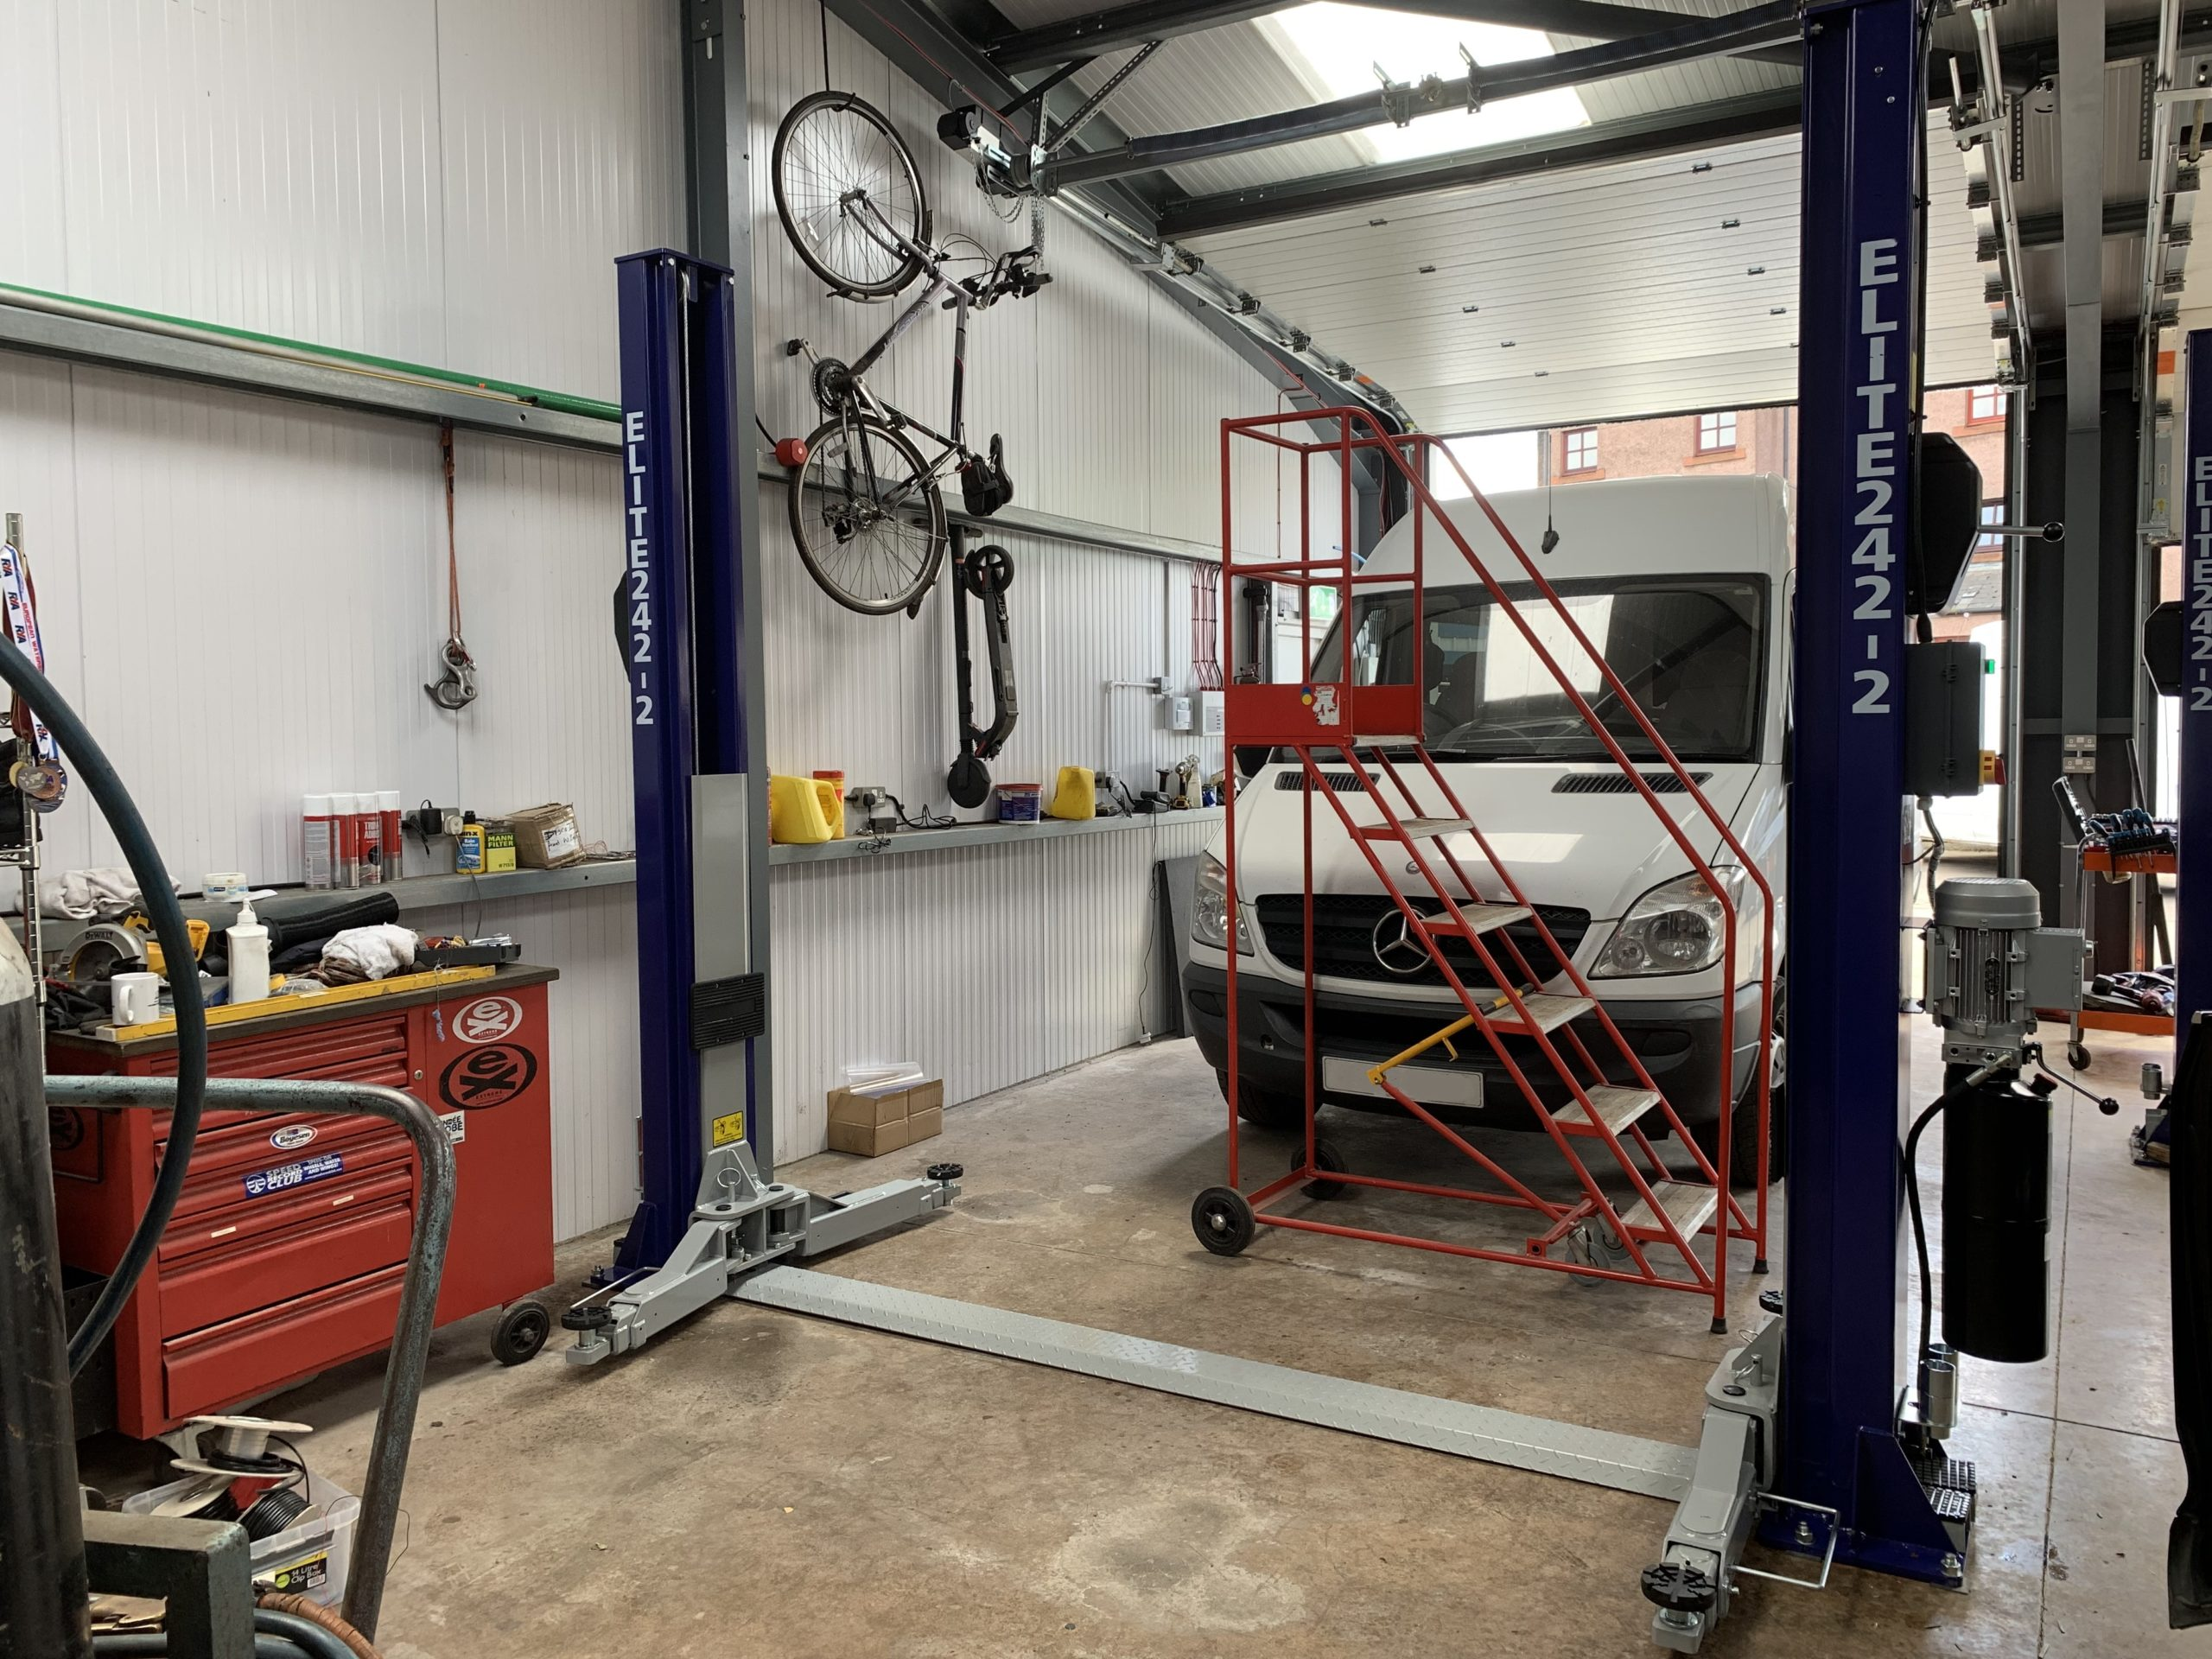 This is the third 2 post lift of the same brand and model that the ISN Garage Assist team have installed at Finlayson Autos.